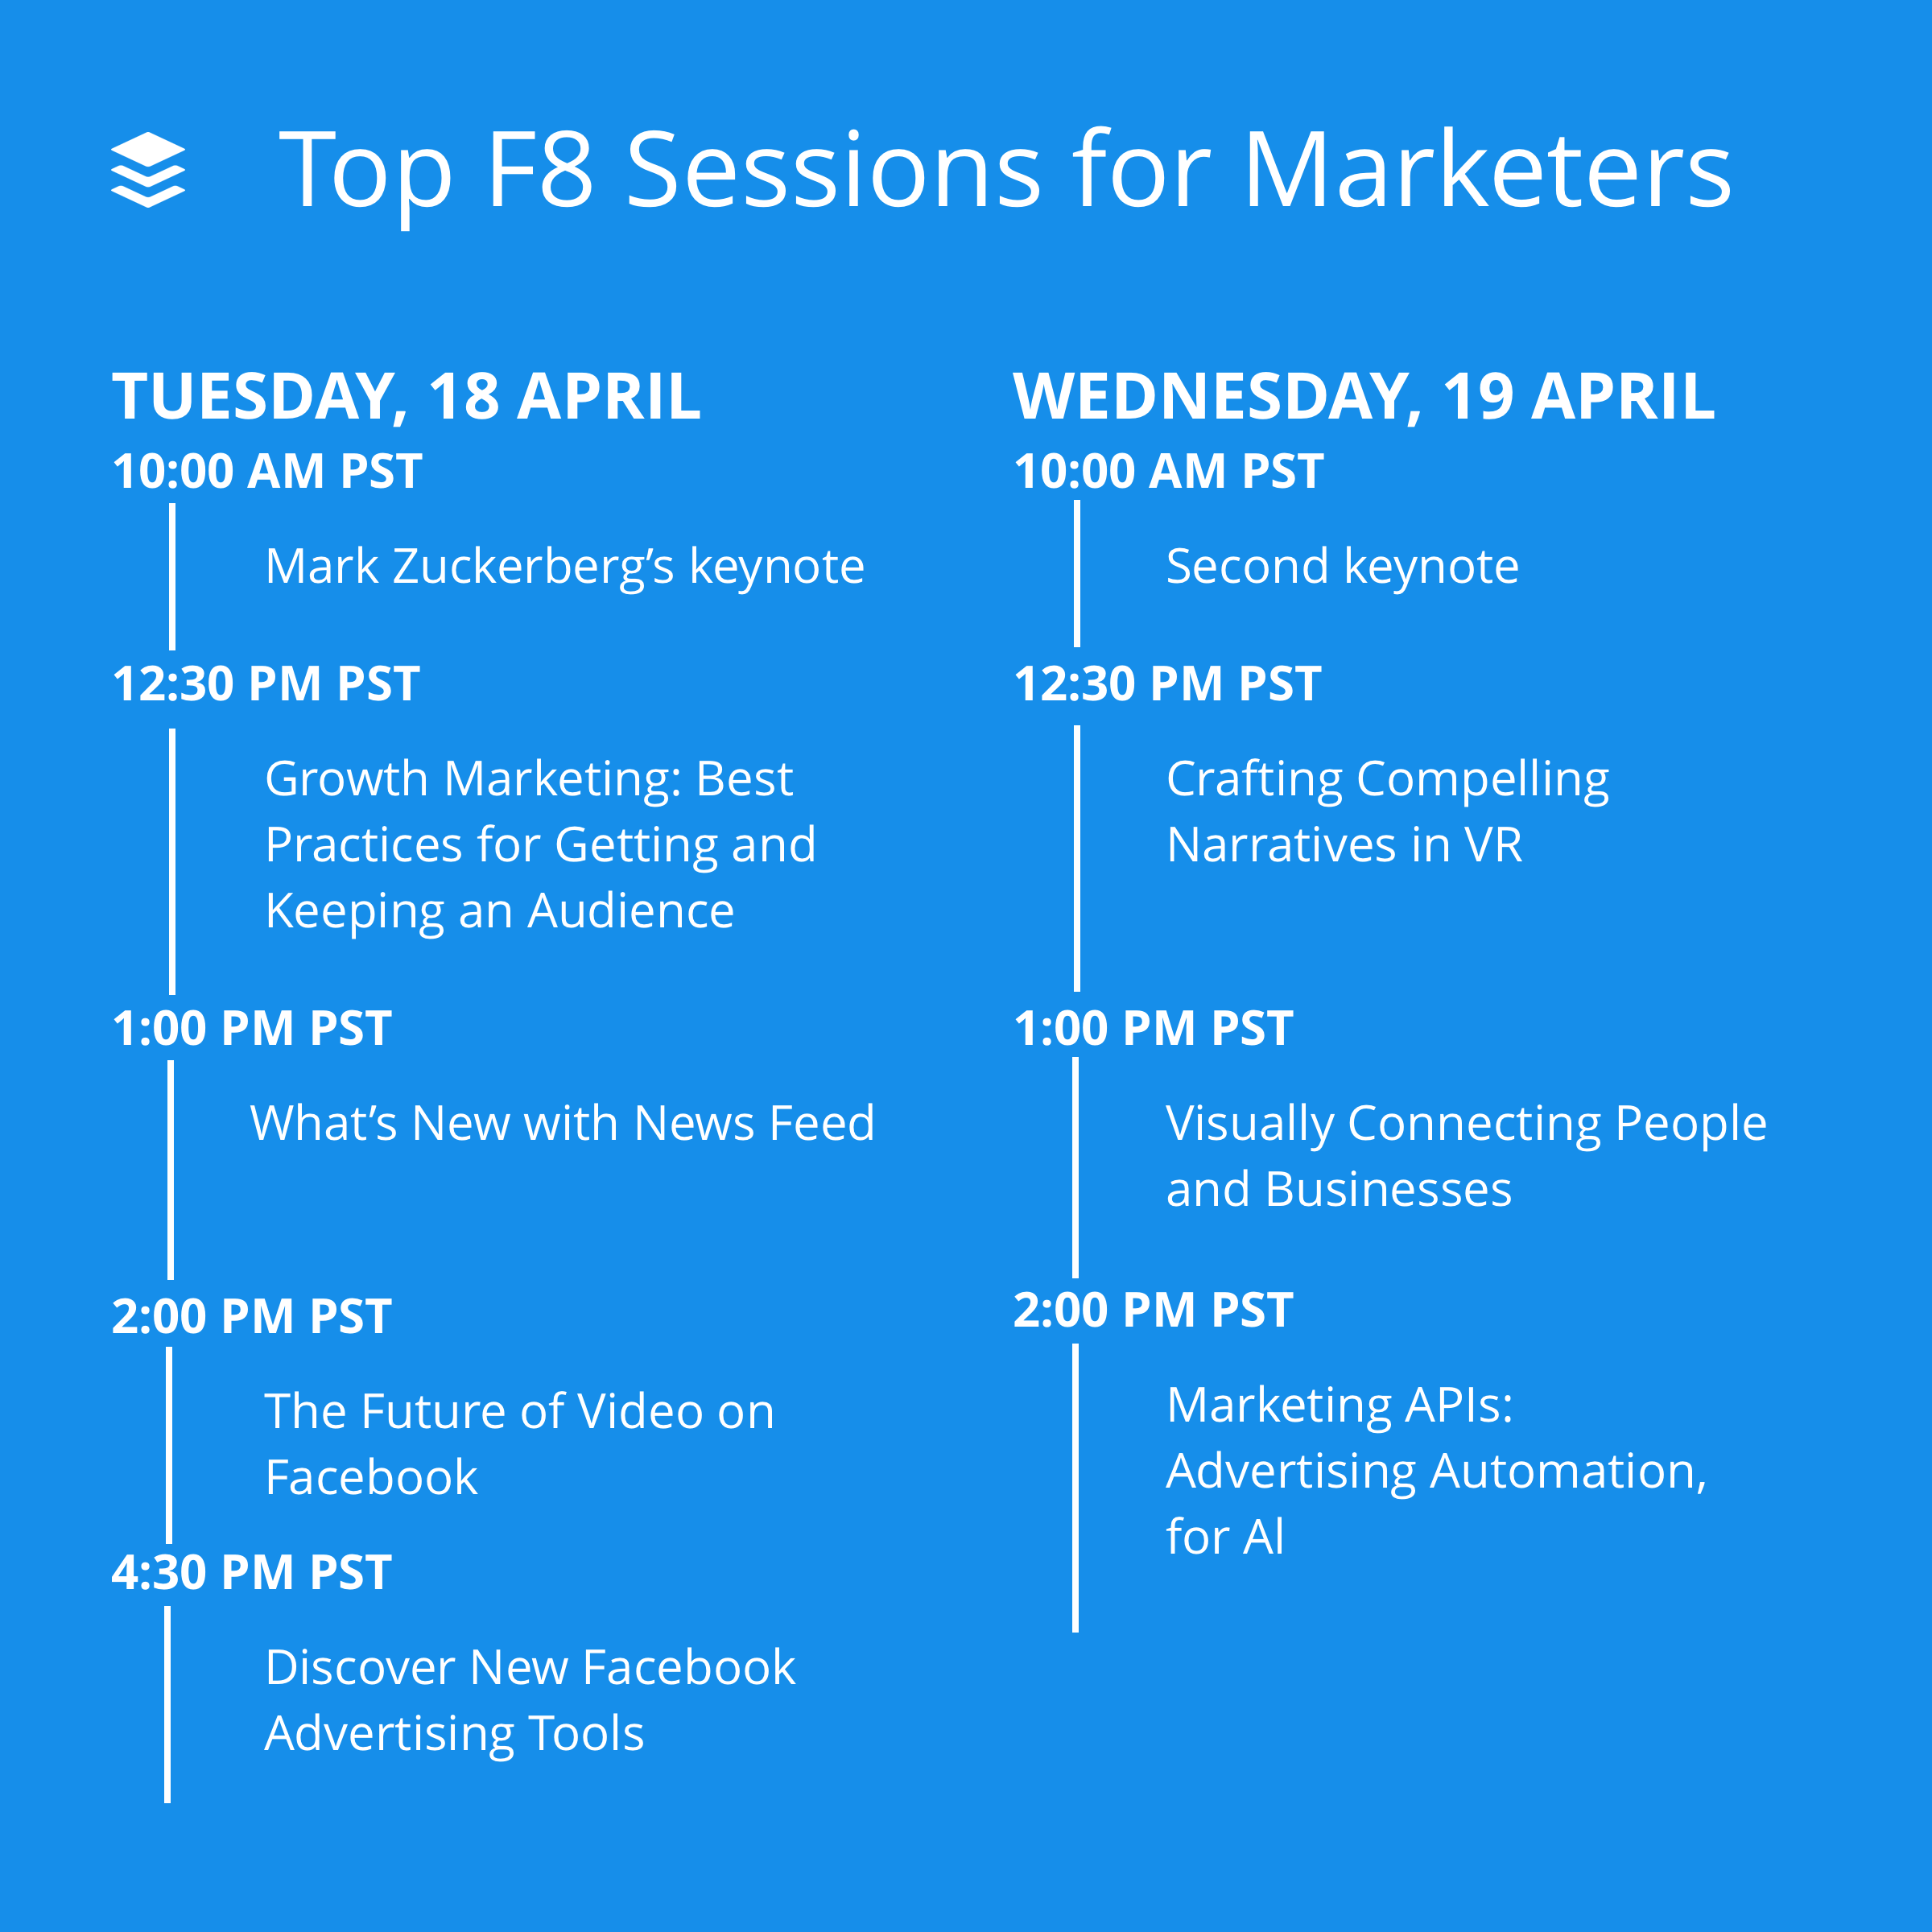 Top F8 sessions for marketers